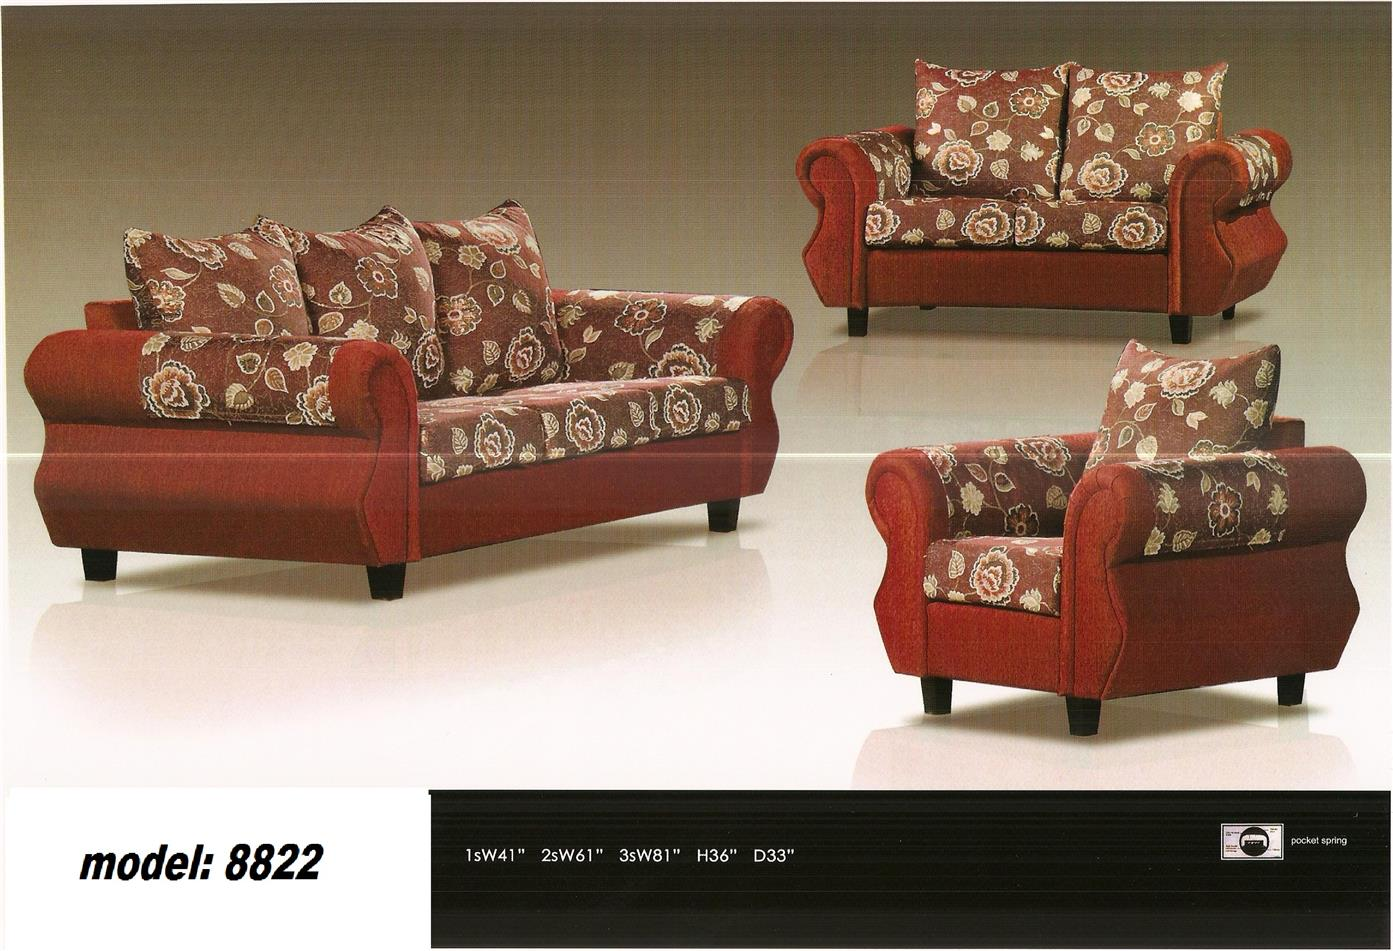 nicehome special offer price sofa1+2+3 model-8822